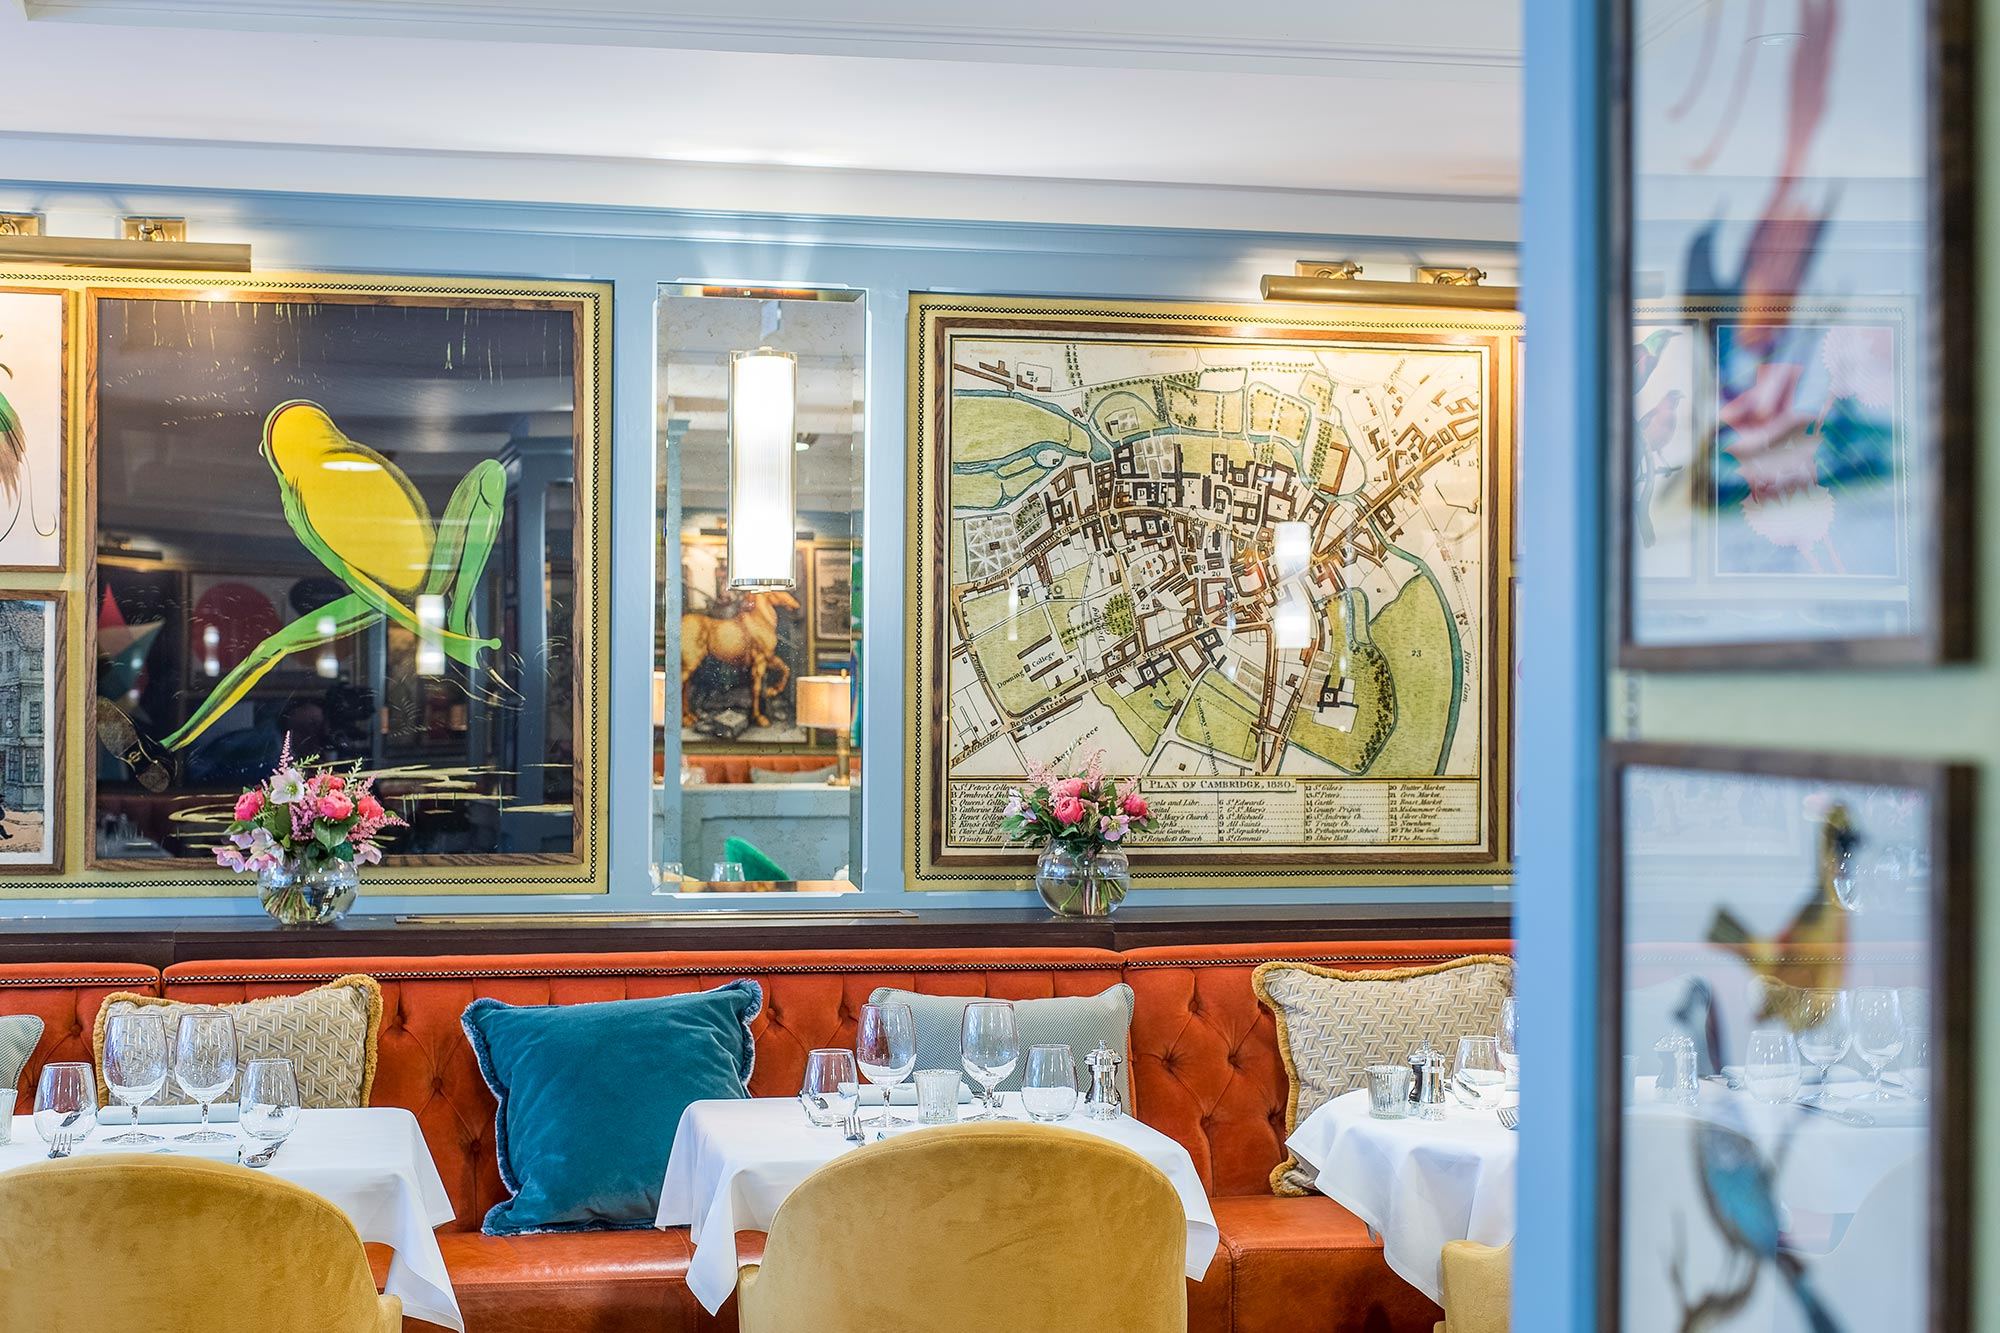 Places to eat in Cambridge, The Ivy Cambridge Brasserie - The Ivy Cambridge Brasserie